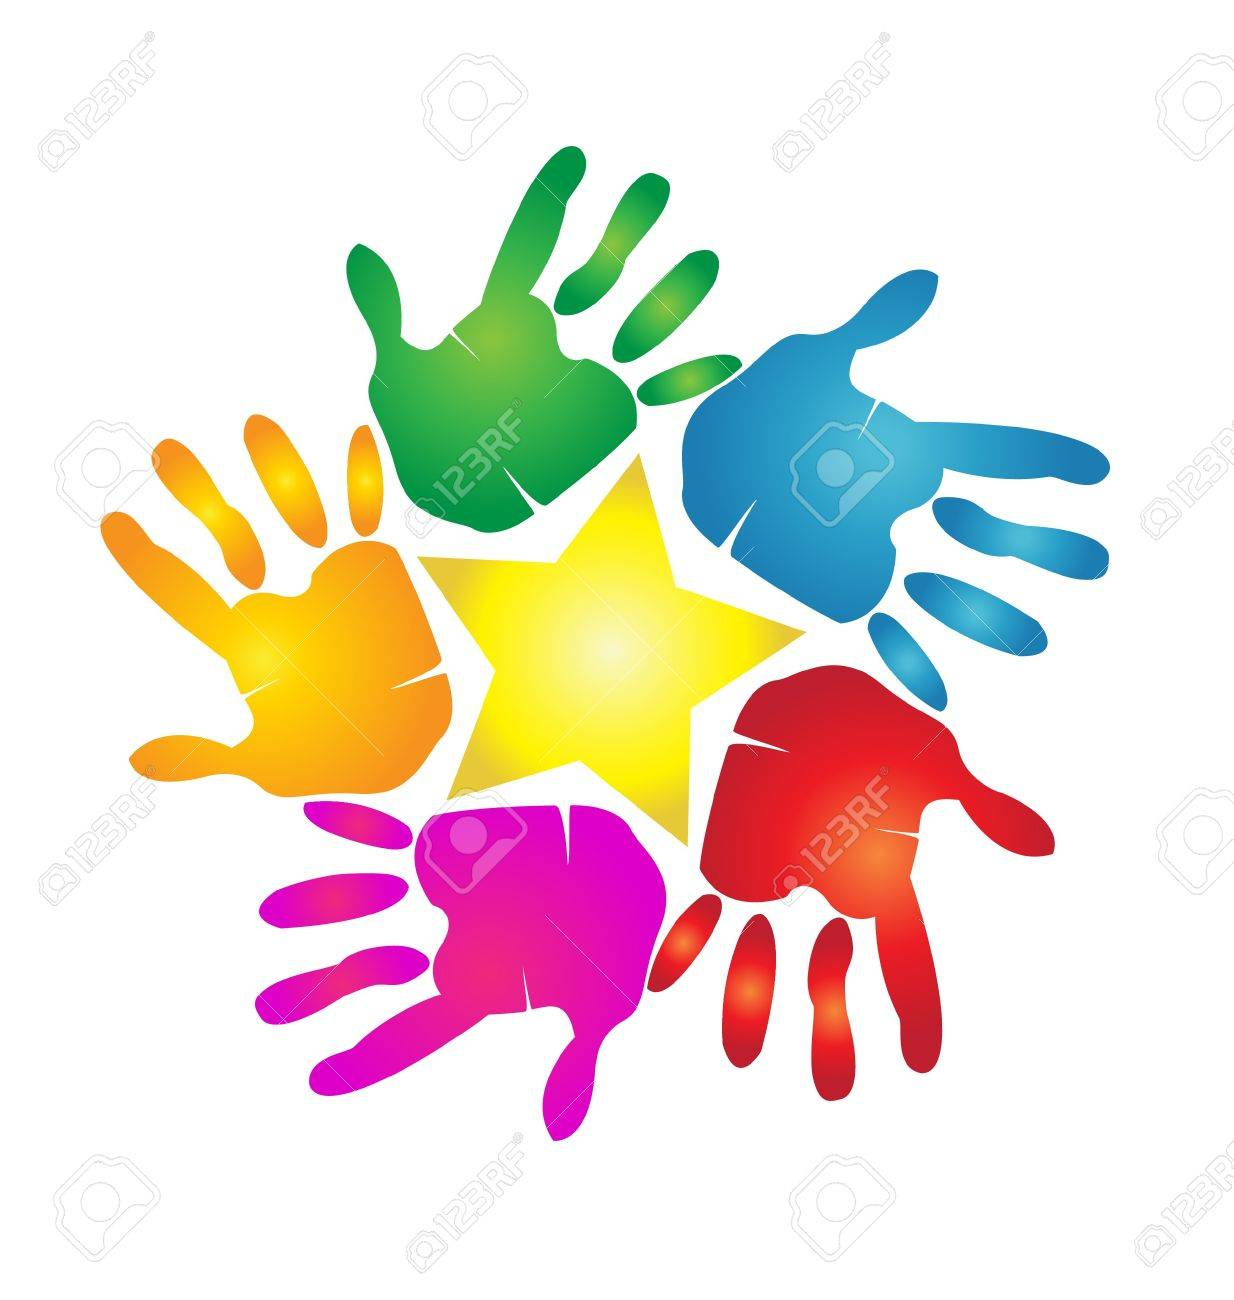 Hands Print Around A Star Royalty Free Cliparts, Vectors, And ...